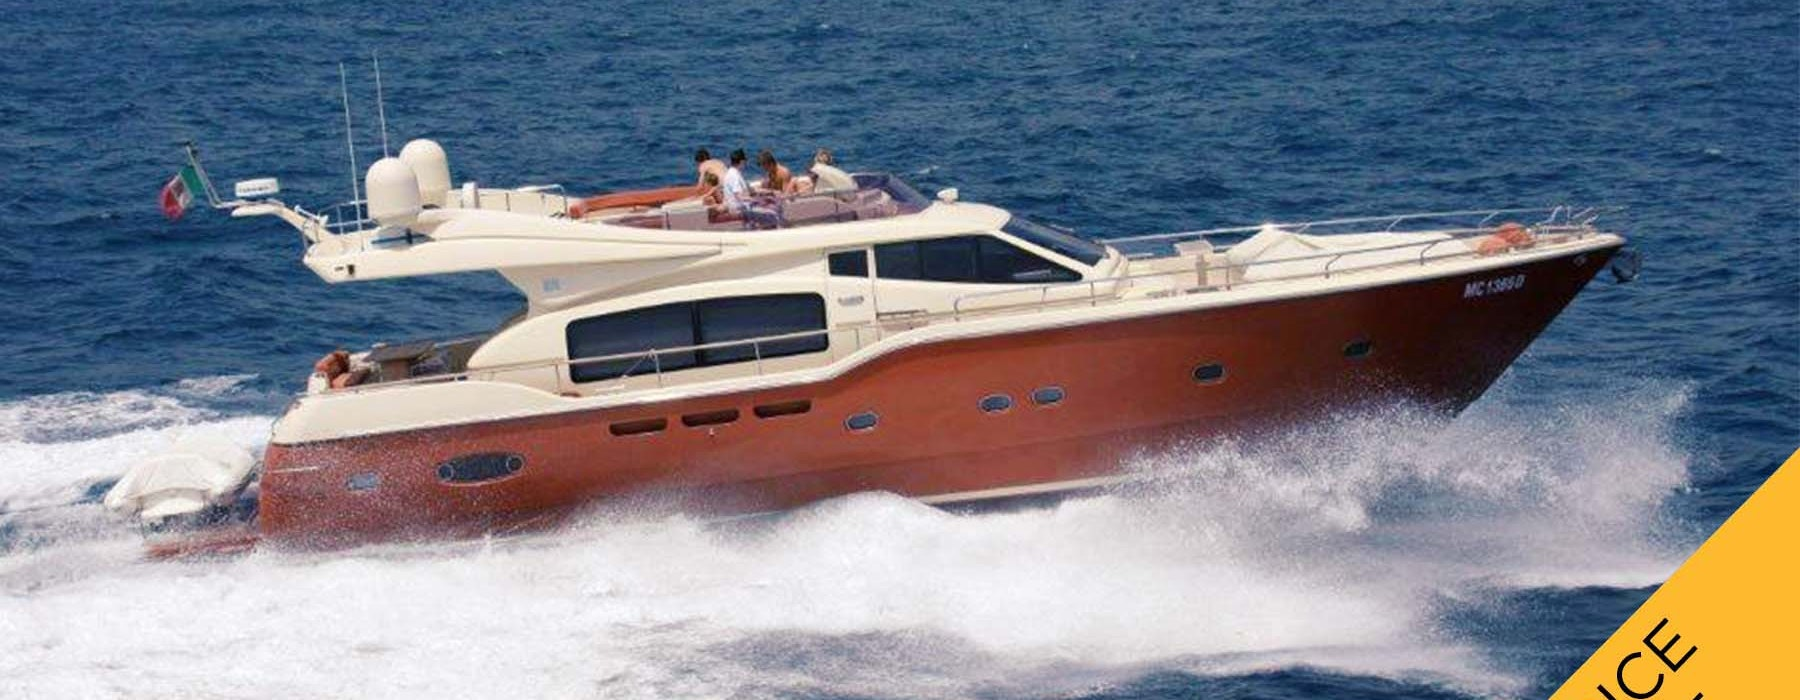 Feretti Altura VICTORIA 21m price reduced